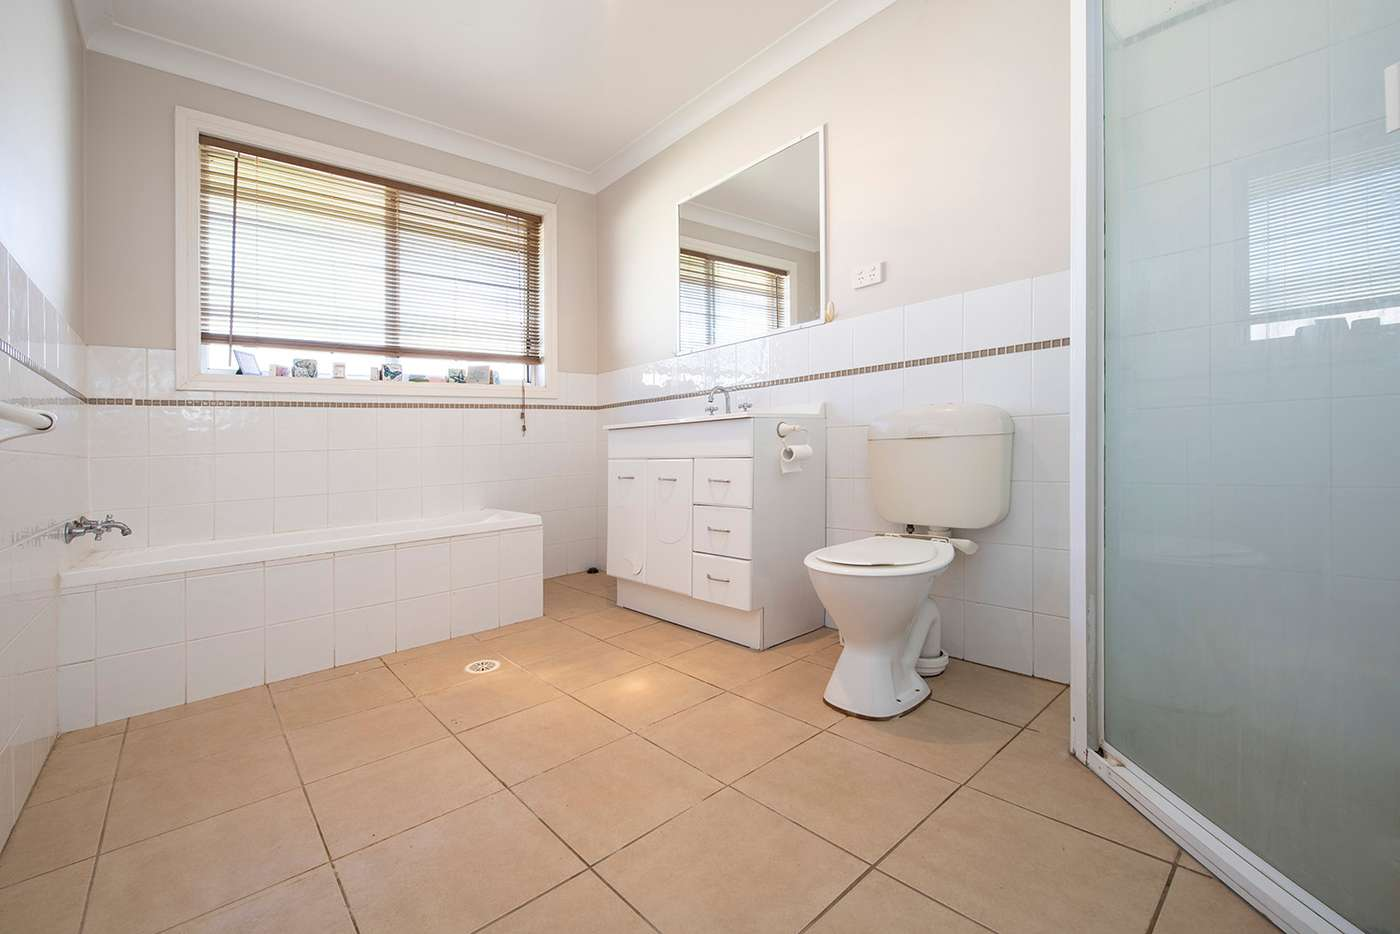 Seventh view of Homely villa listing, 2/14 Paxton Street, Denman NSW 2328